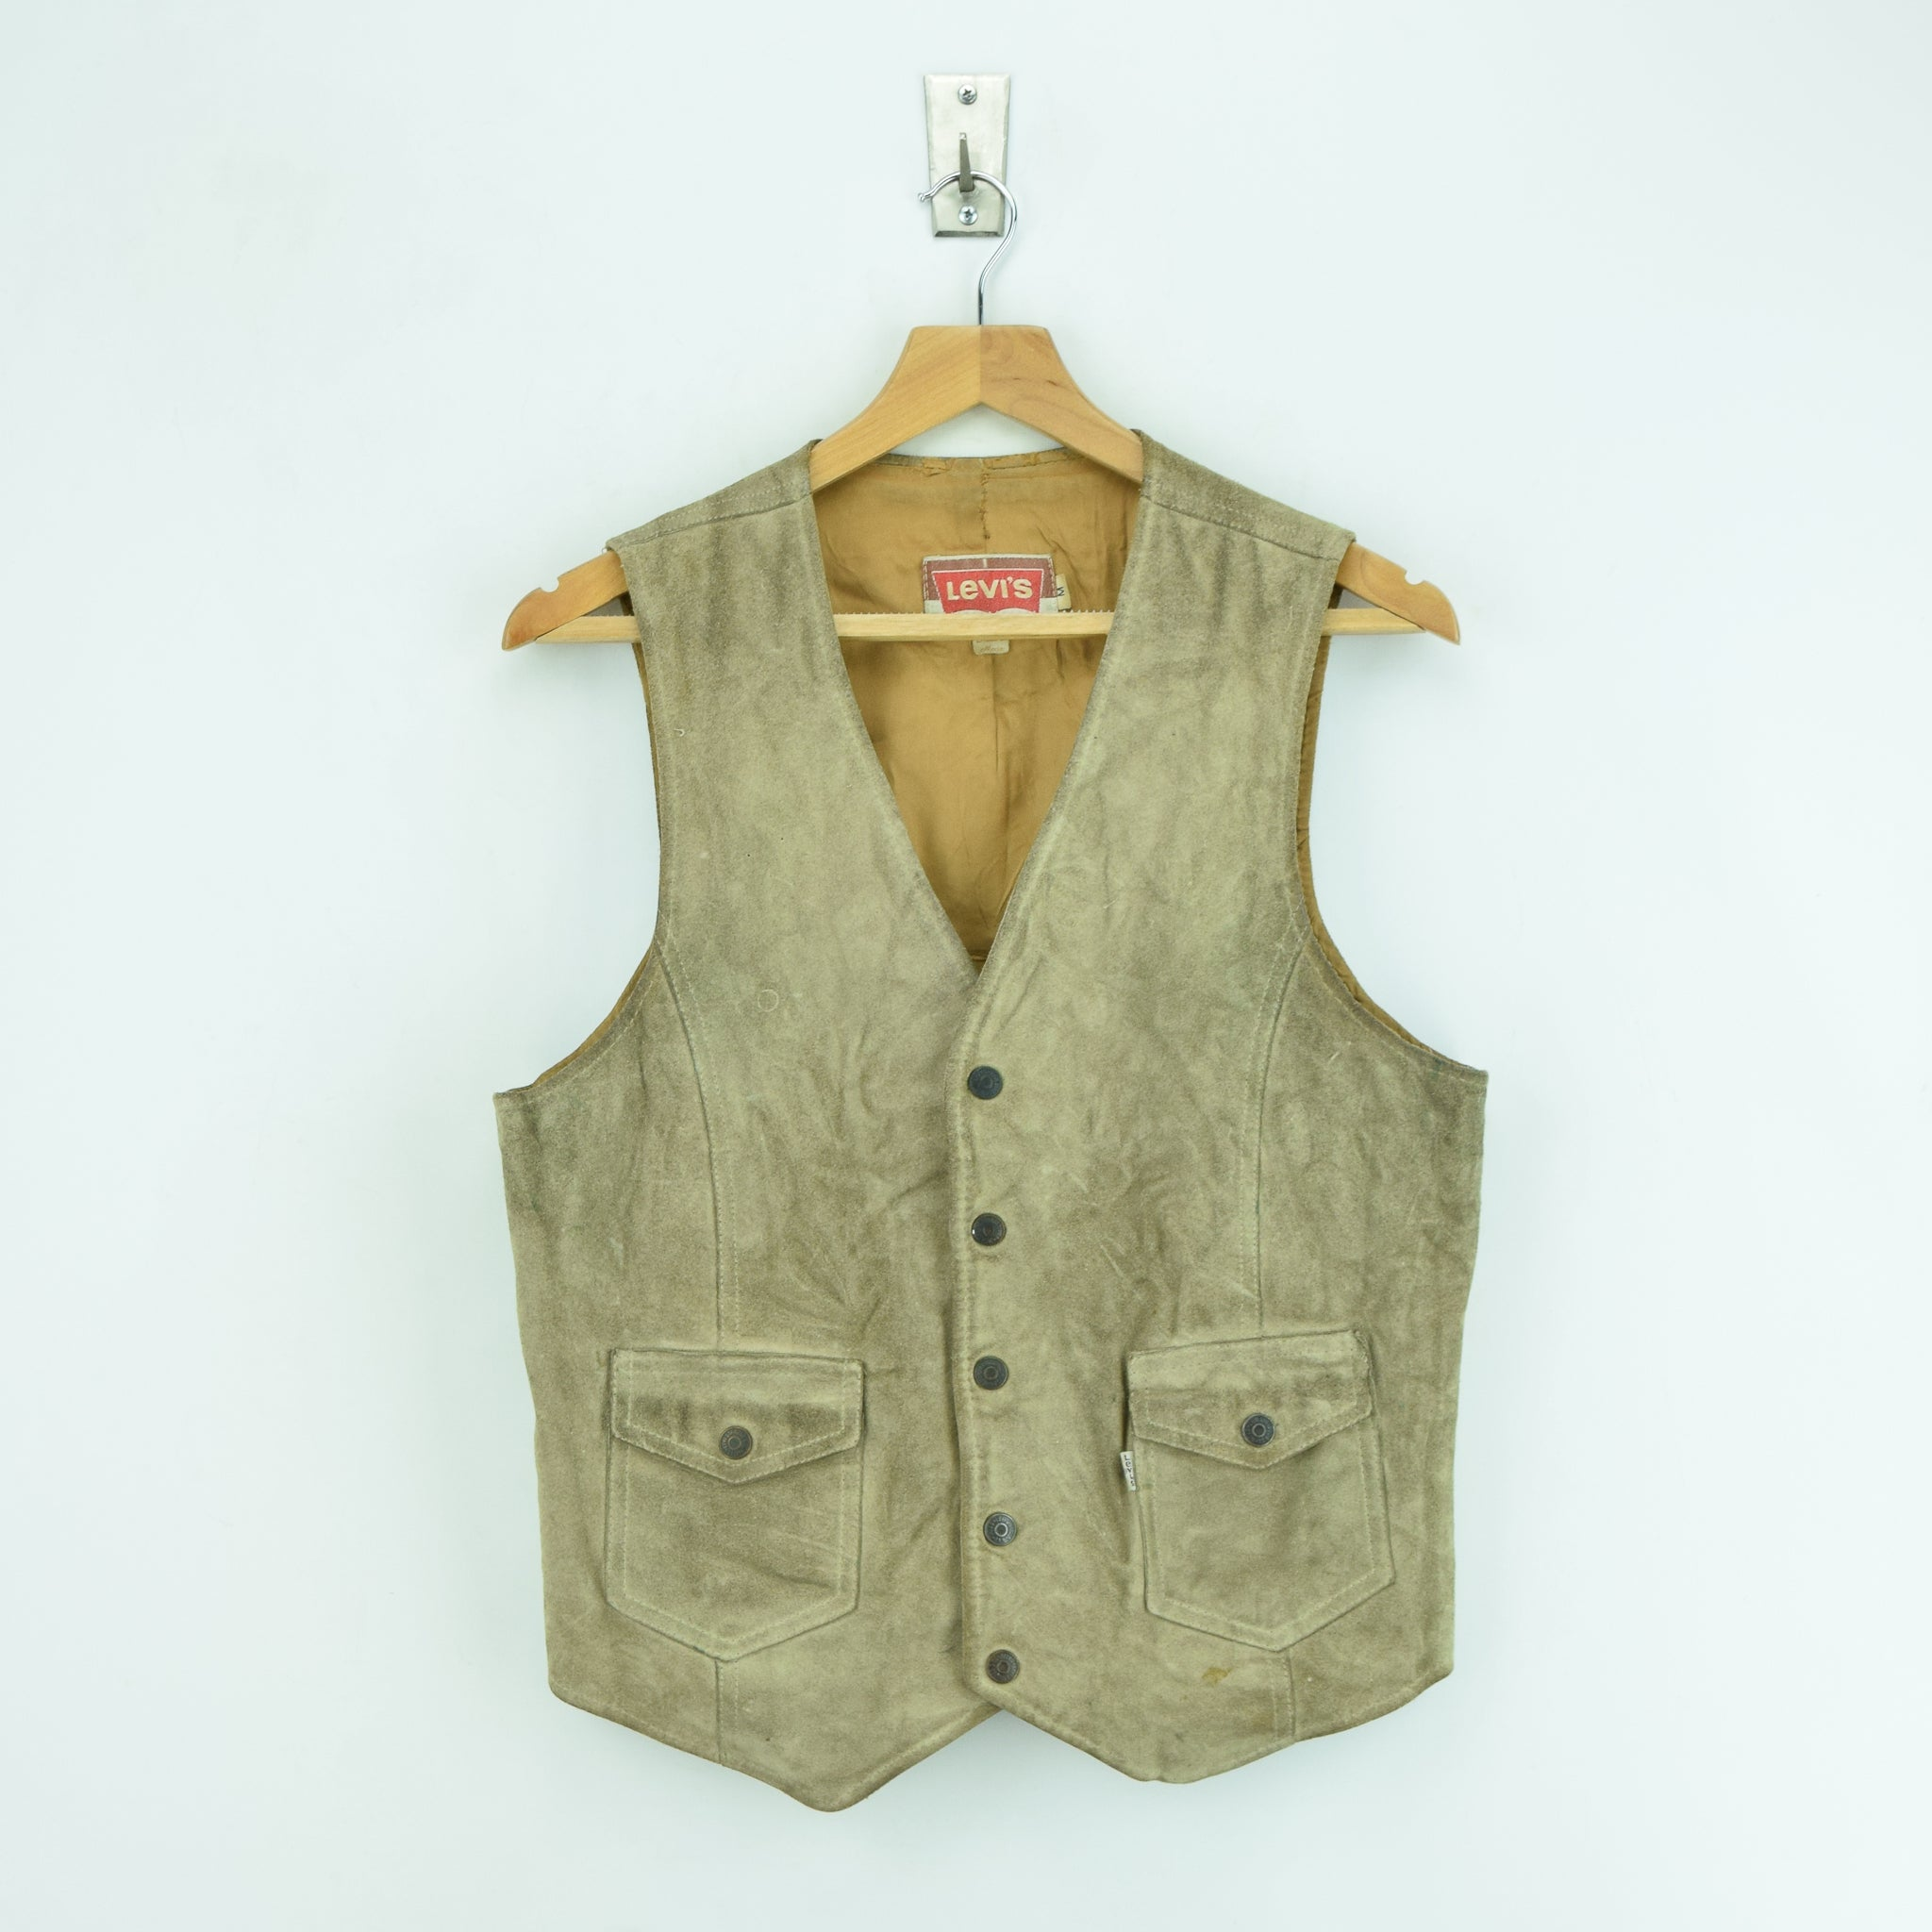 Vintage Levi White Tab Suede Leather Western Rancher Cowboy Waistcoat Vest S front